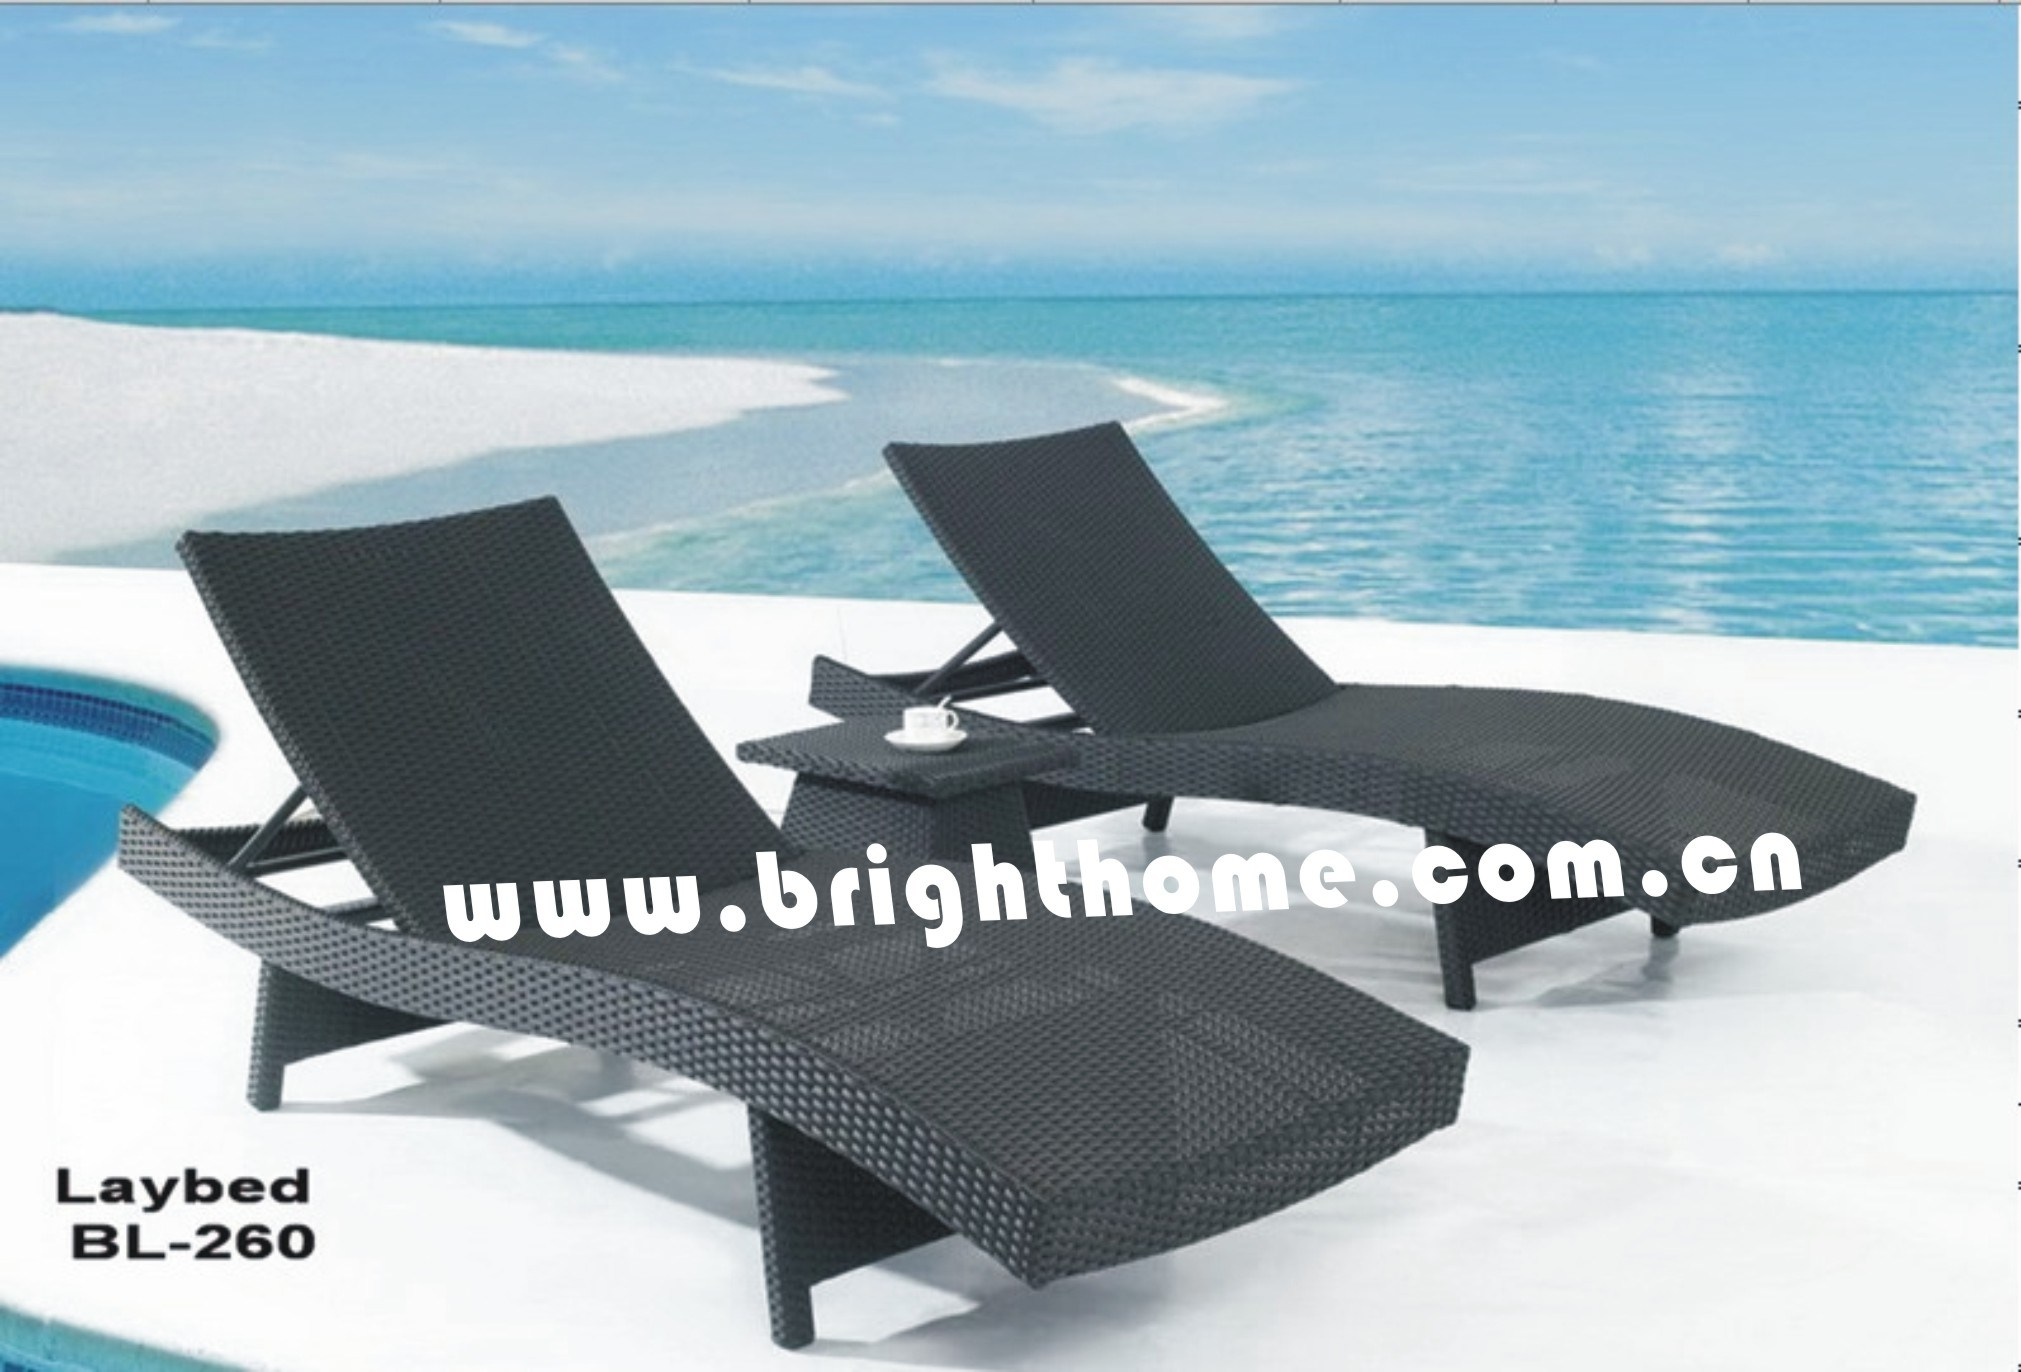 Day Bed / Laybed / Outdoor Lounge / Beach Bed / Beach Chair (BL-260)